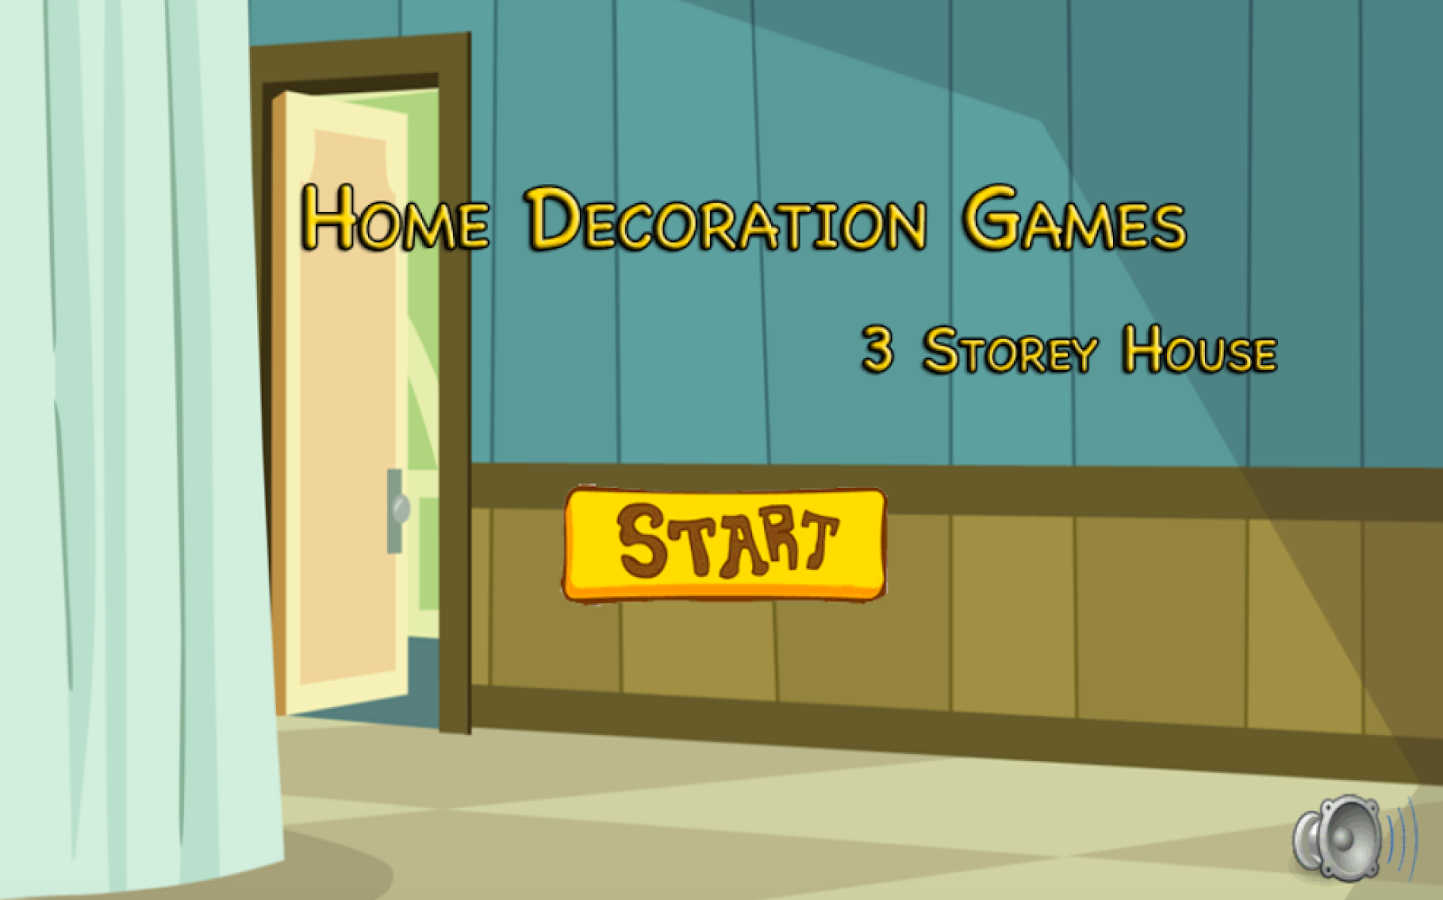 Home Decor Games Android Apps on Google Play